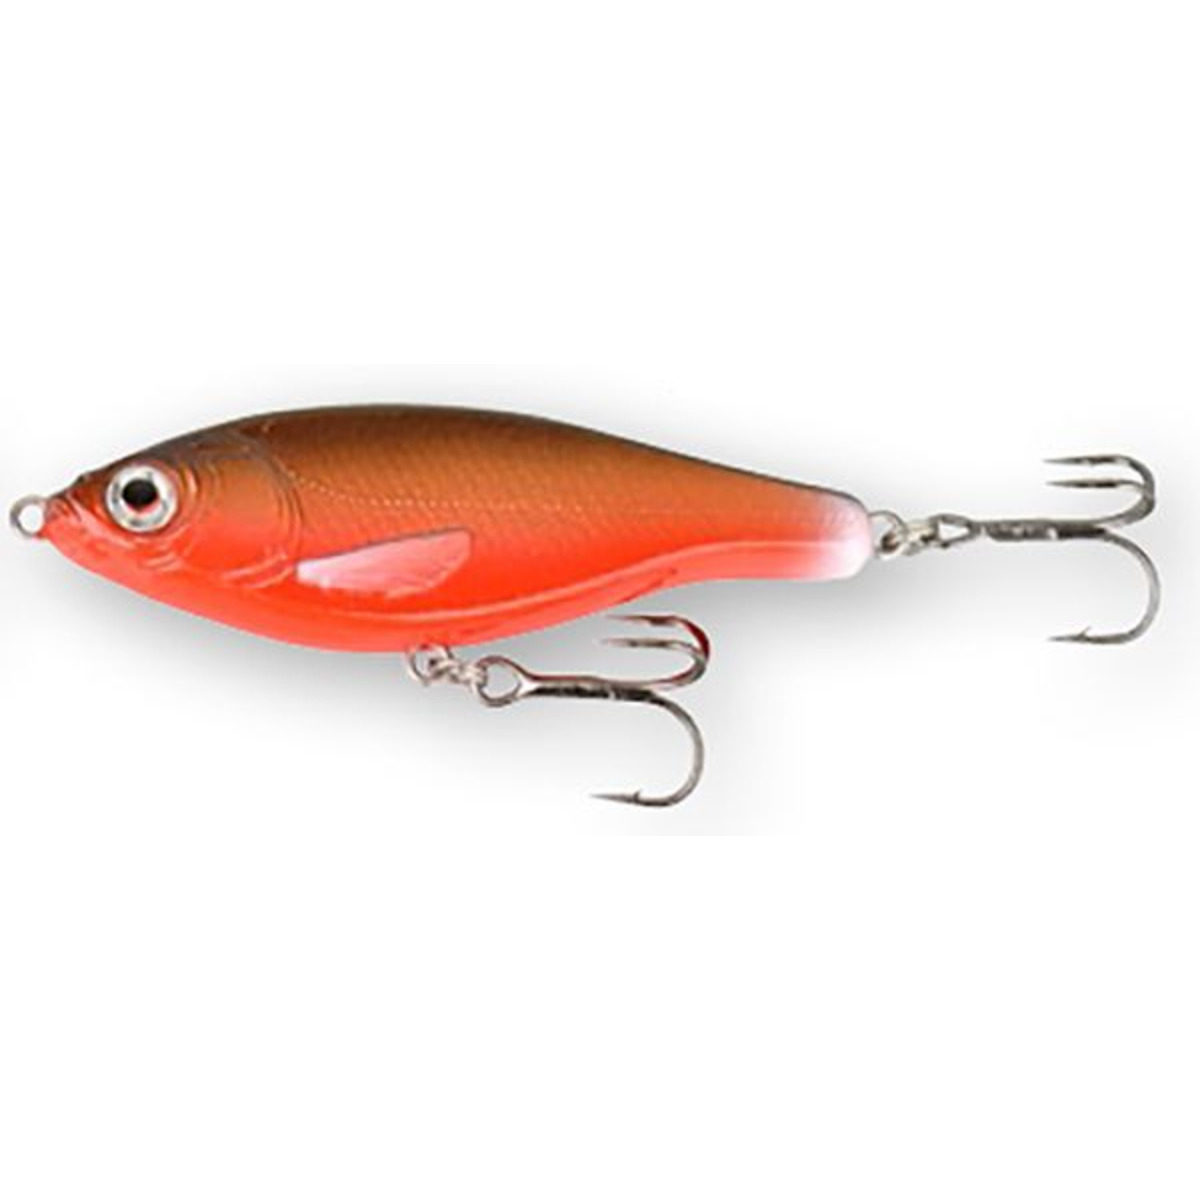 Savage Gear 3D Roach Jerkster - 14.5 cm - 66 g - Black and Red